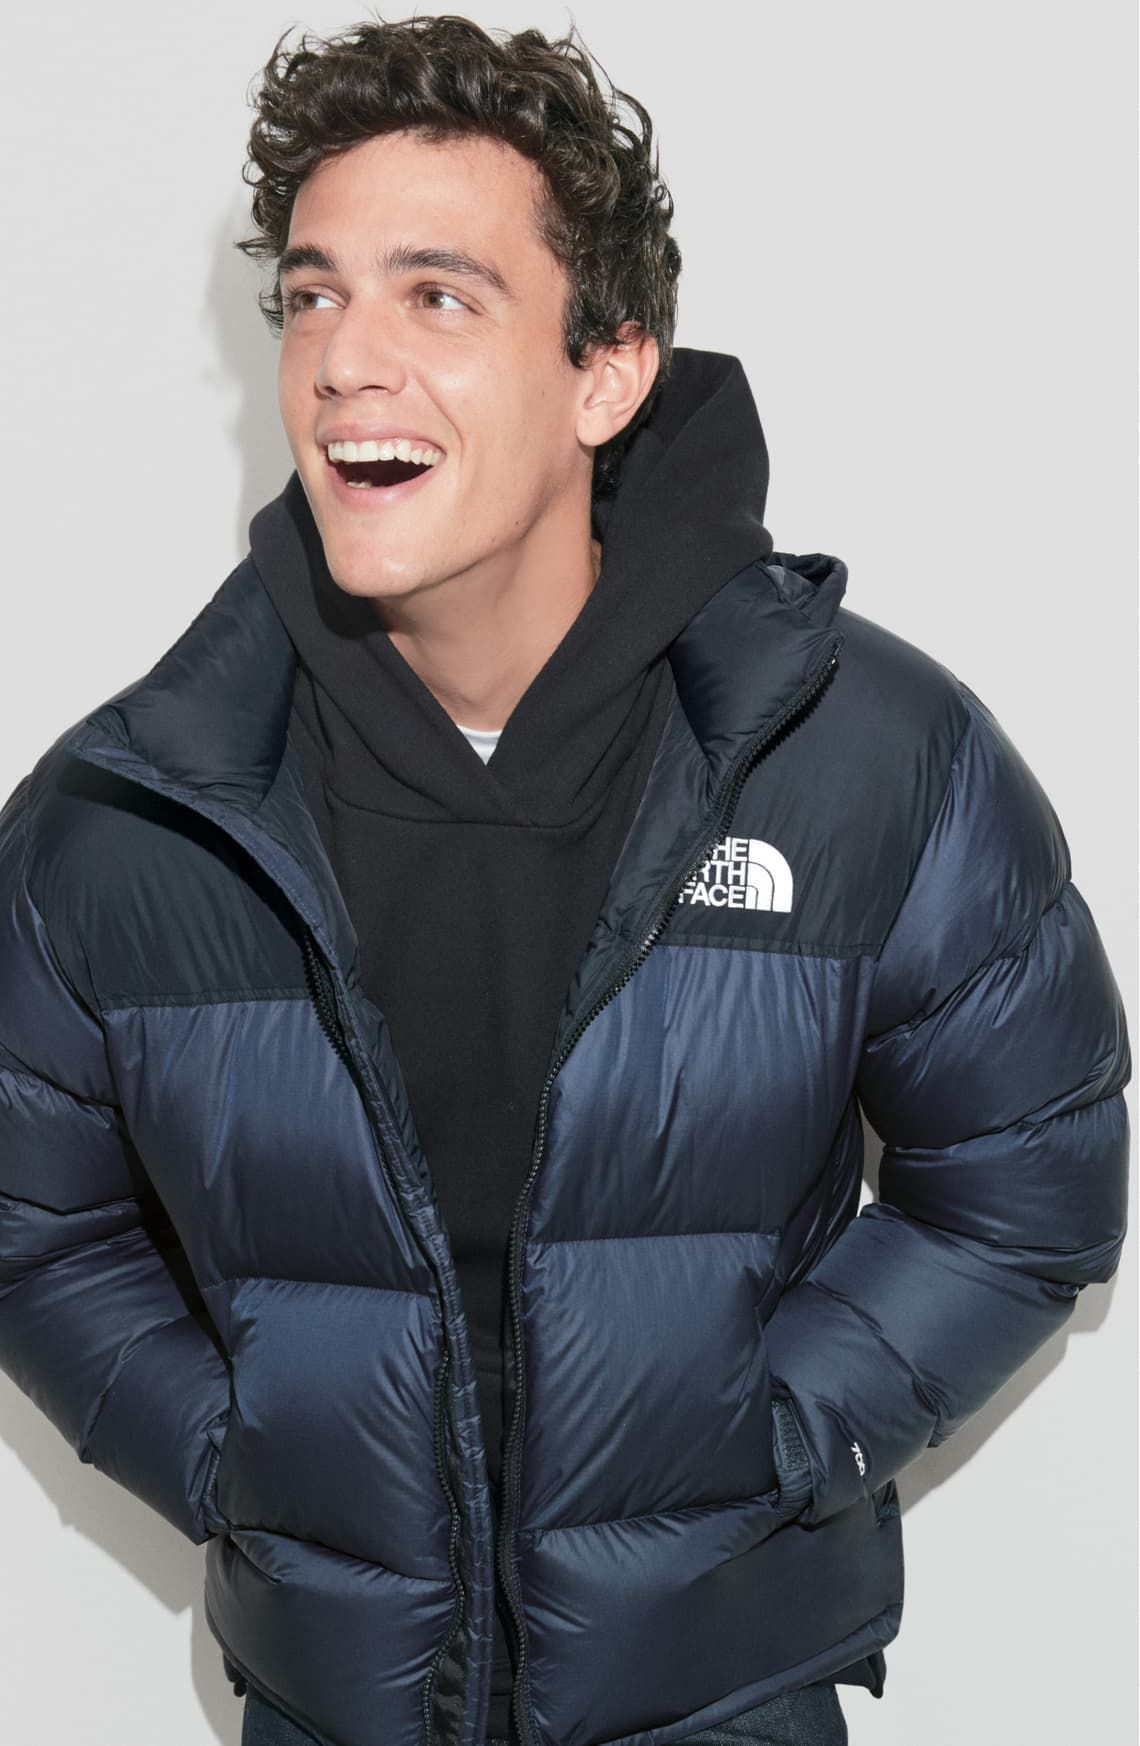 The North Face Nuptse 1996 Packable Quilted Down Jacket Nordstrom In 2021 North Face Jacket Mens North Face Jacket Outfit North Face Nuptse Jacket [ 1746 x 1140 Pixel ]